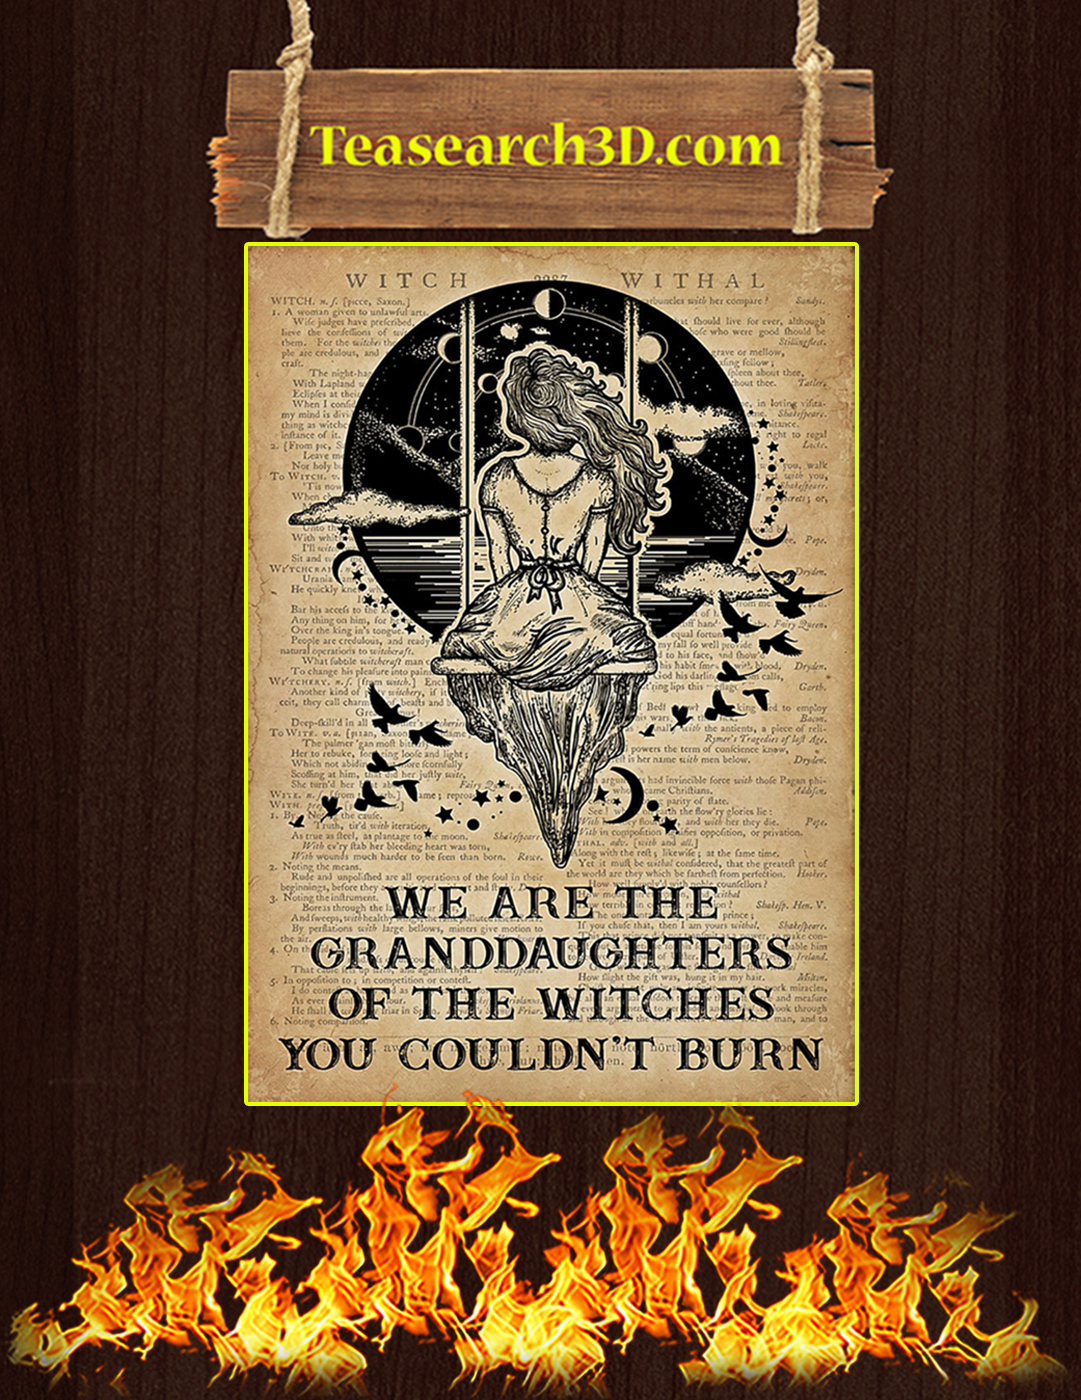 We are the granddaughters of the witches you couldn't burn poster A2